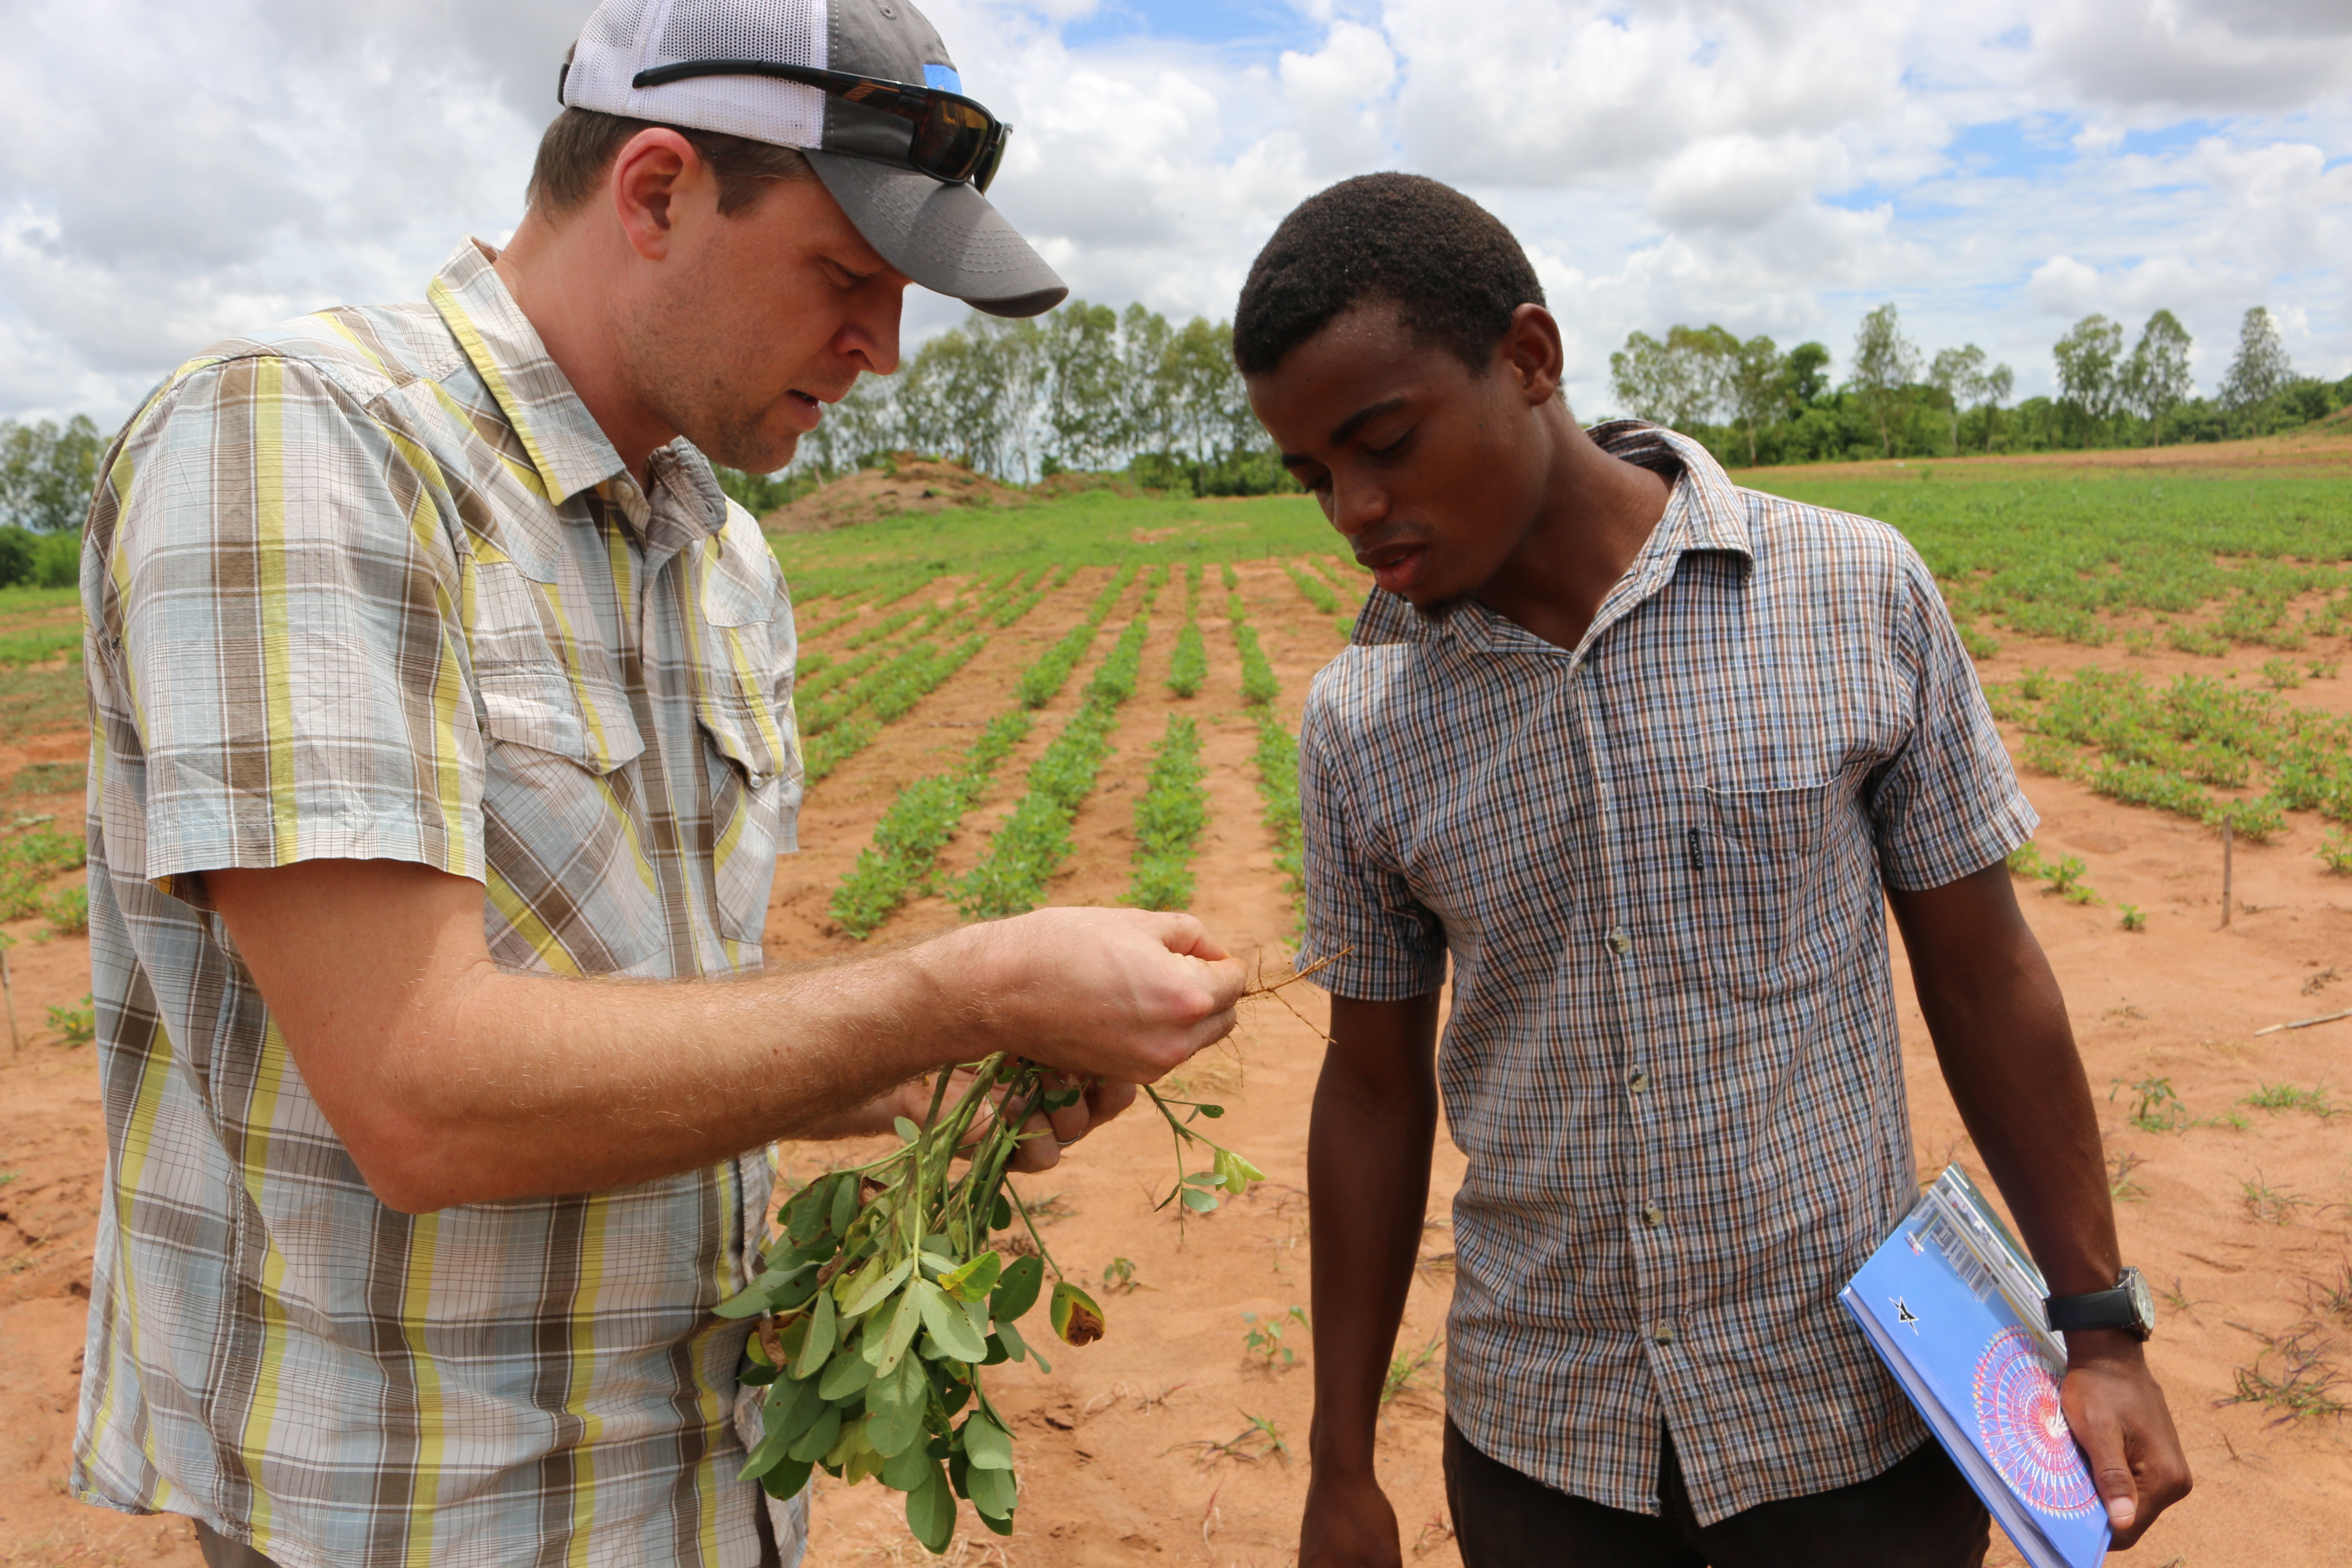 Jamie Rhoads, then-assistant director of the Peanut & Mycotoxin Innovation Lab at UGA, shows Mozambican student root nodulation on a peanut plant in Montepuez, Mozambique in January 2017. The federal government recently awarded the University of Georgia another five-year program to work with scientists in the U.S. and partner countries to increase global food security through peanut.